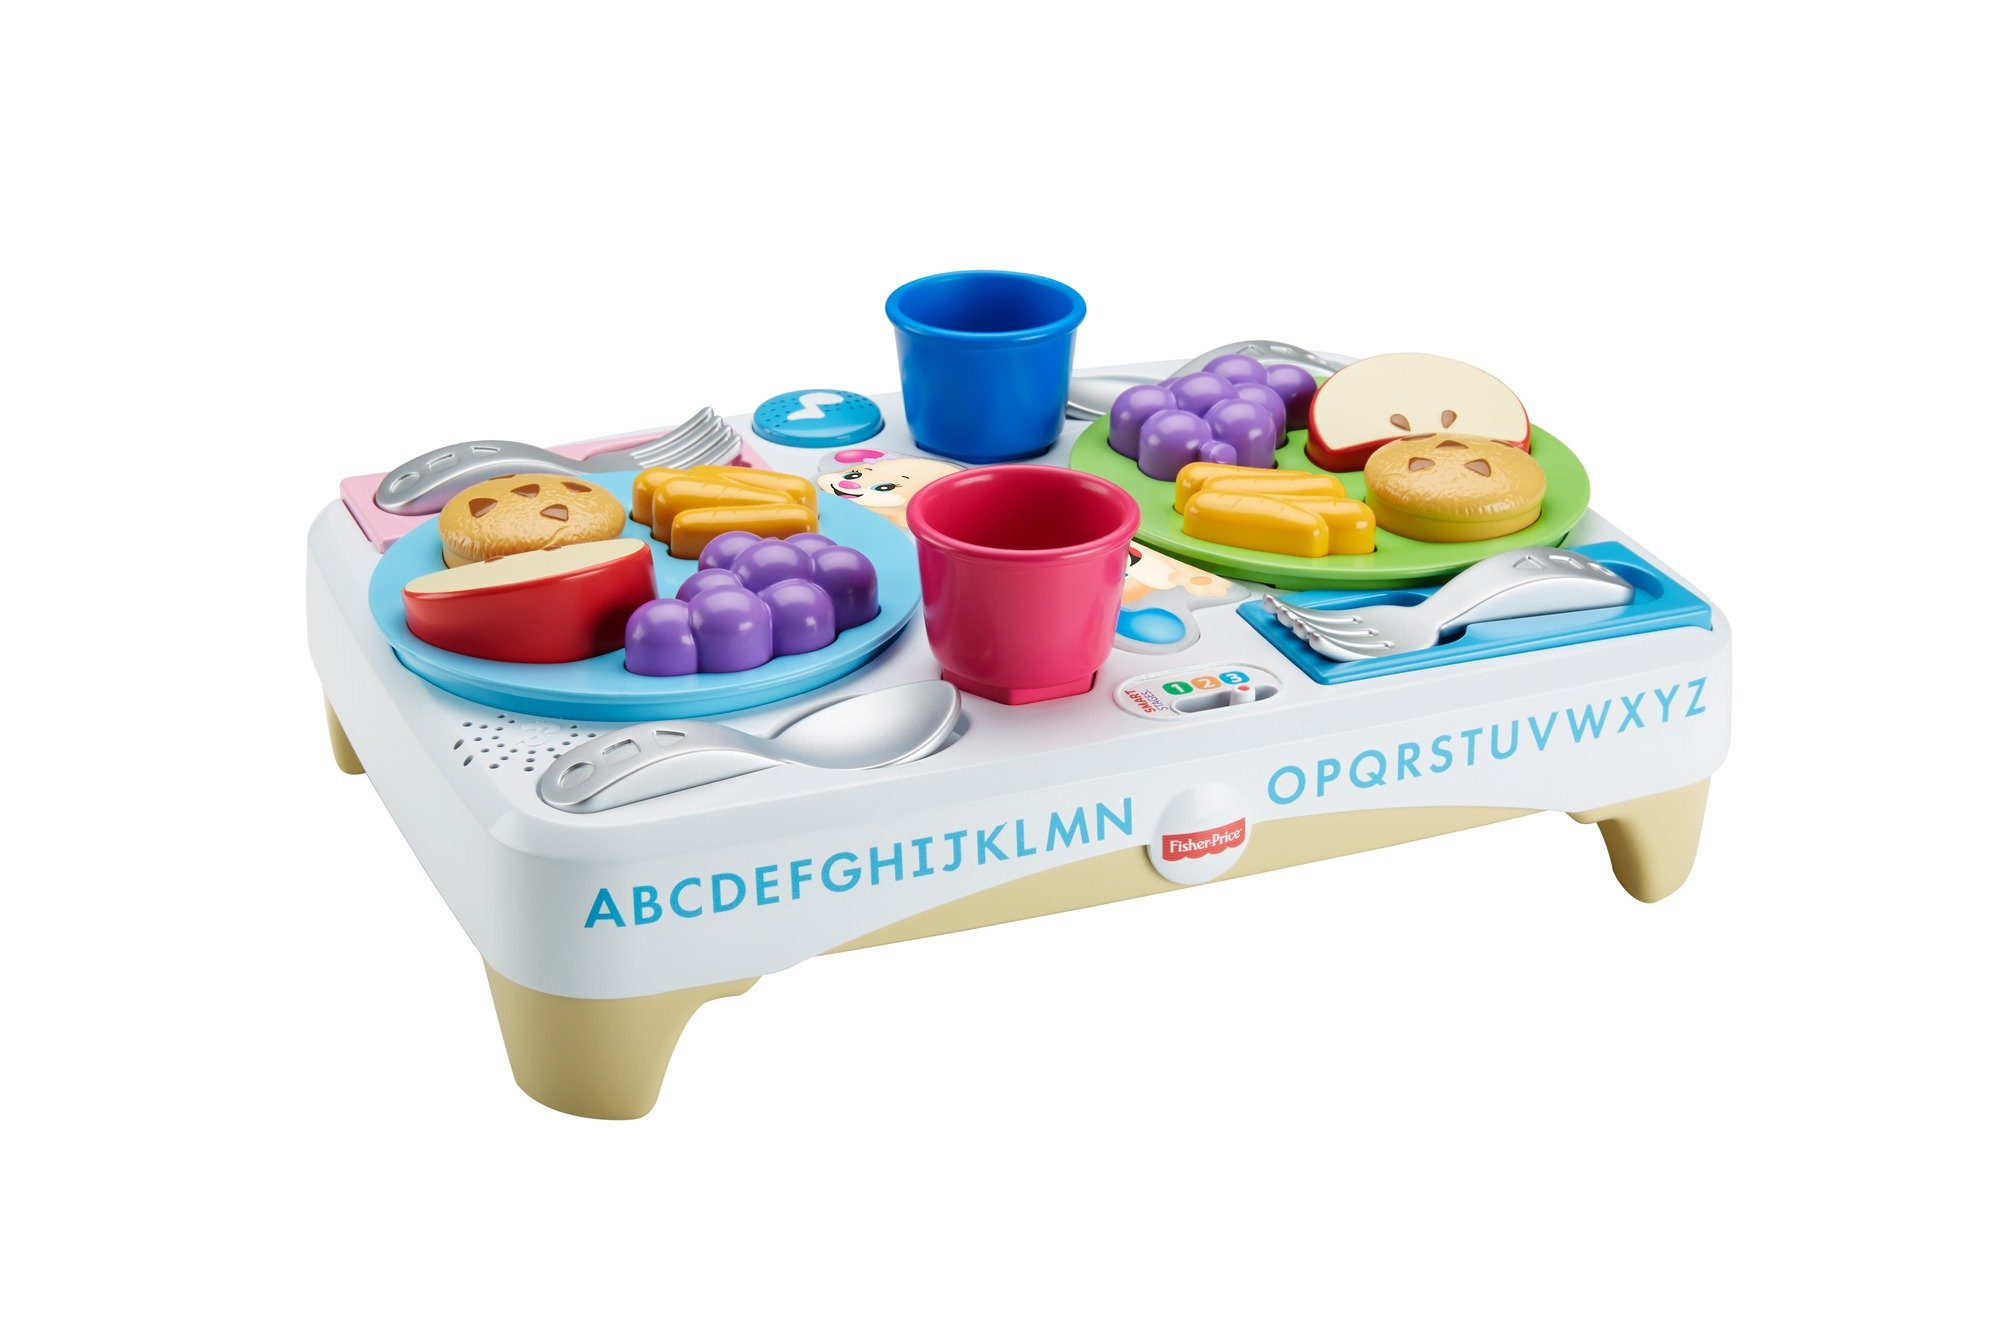 Fisher-Price FBM90 Say Please Snack Set, Laugh and Learn Toddler Kitchen and Food Role Play Toy, Suitable for 18 Months Plus by Fisher-Price (Image #2)